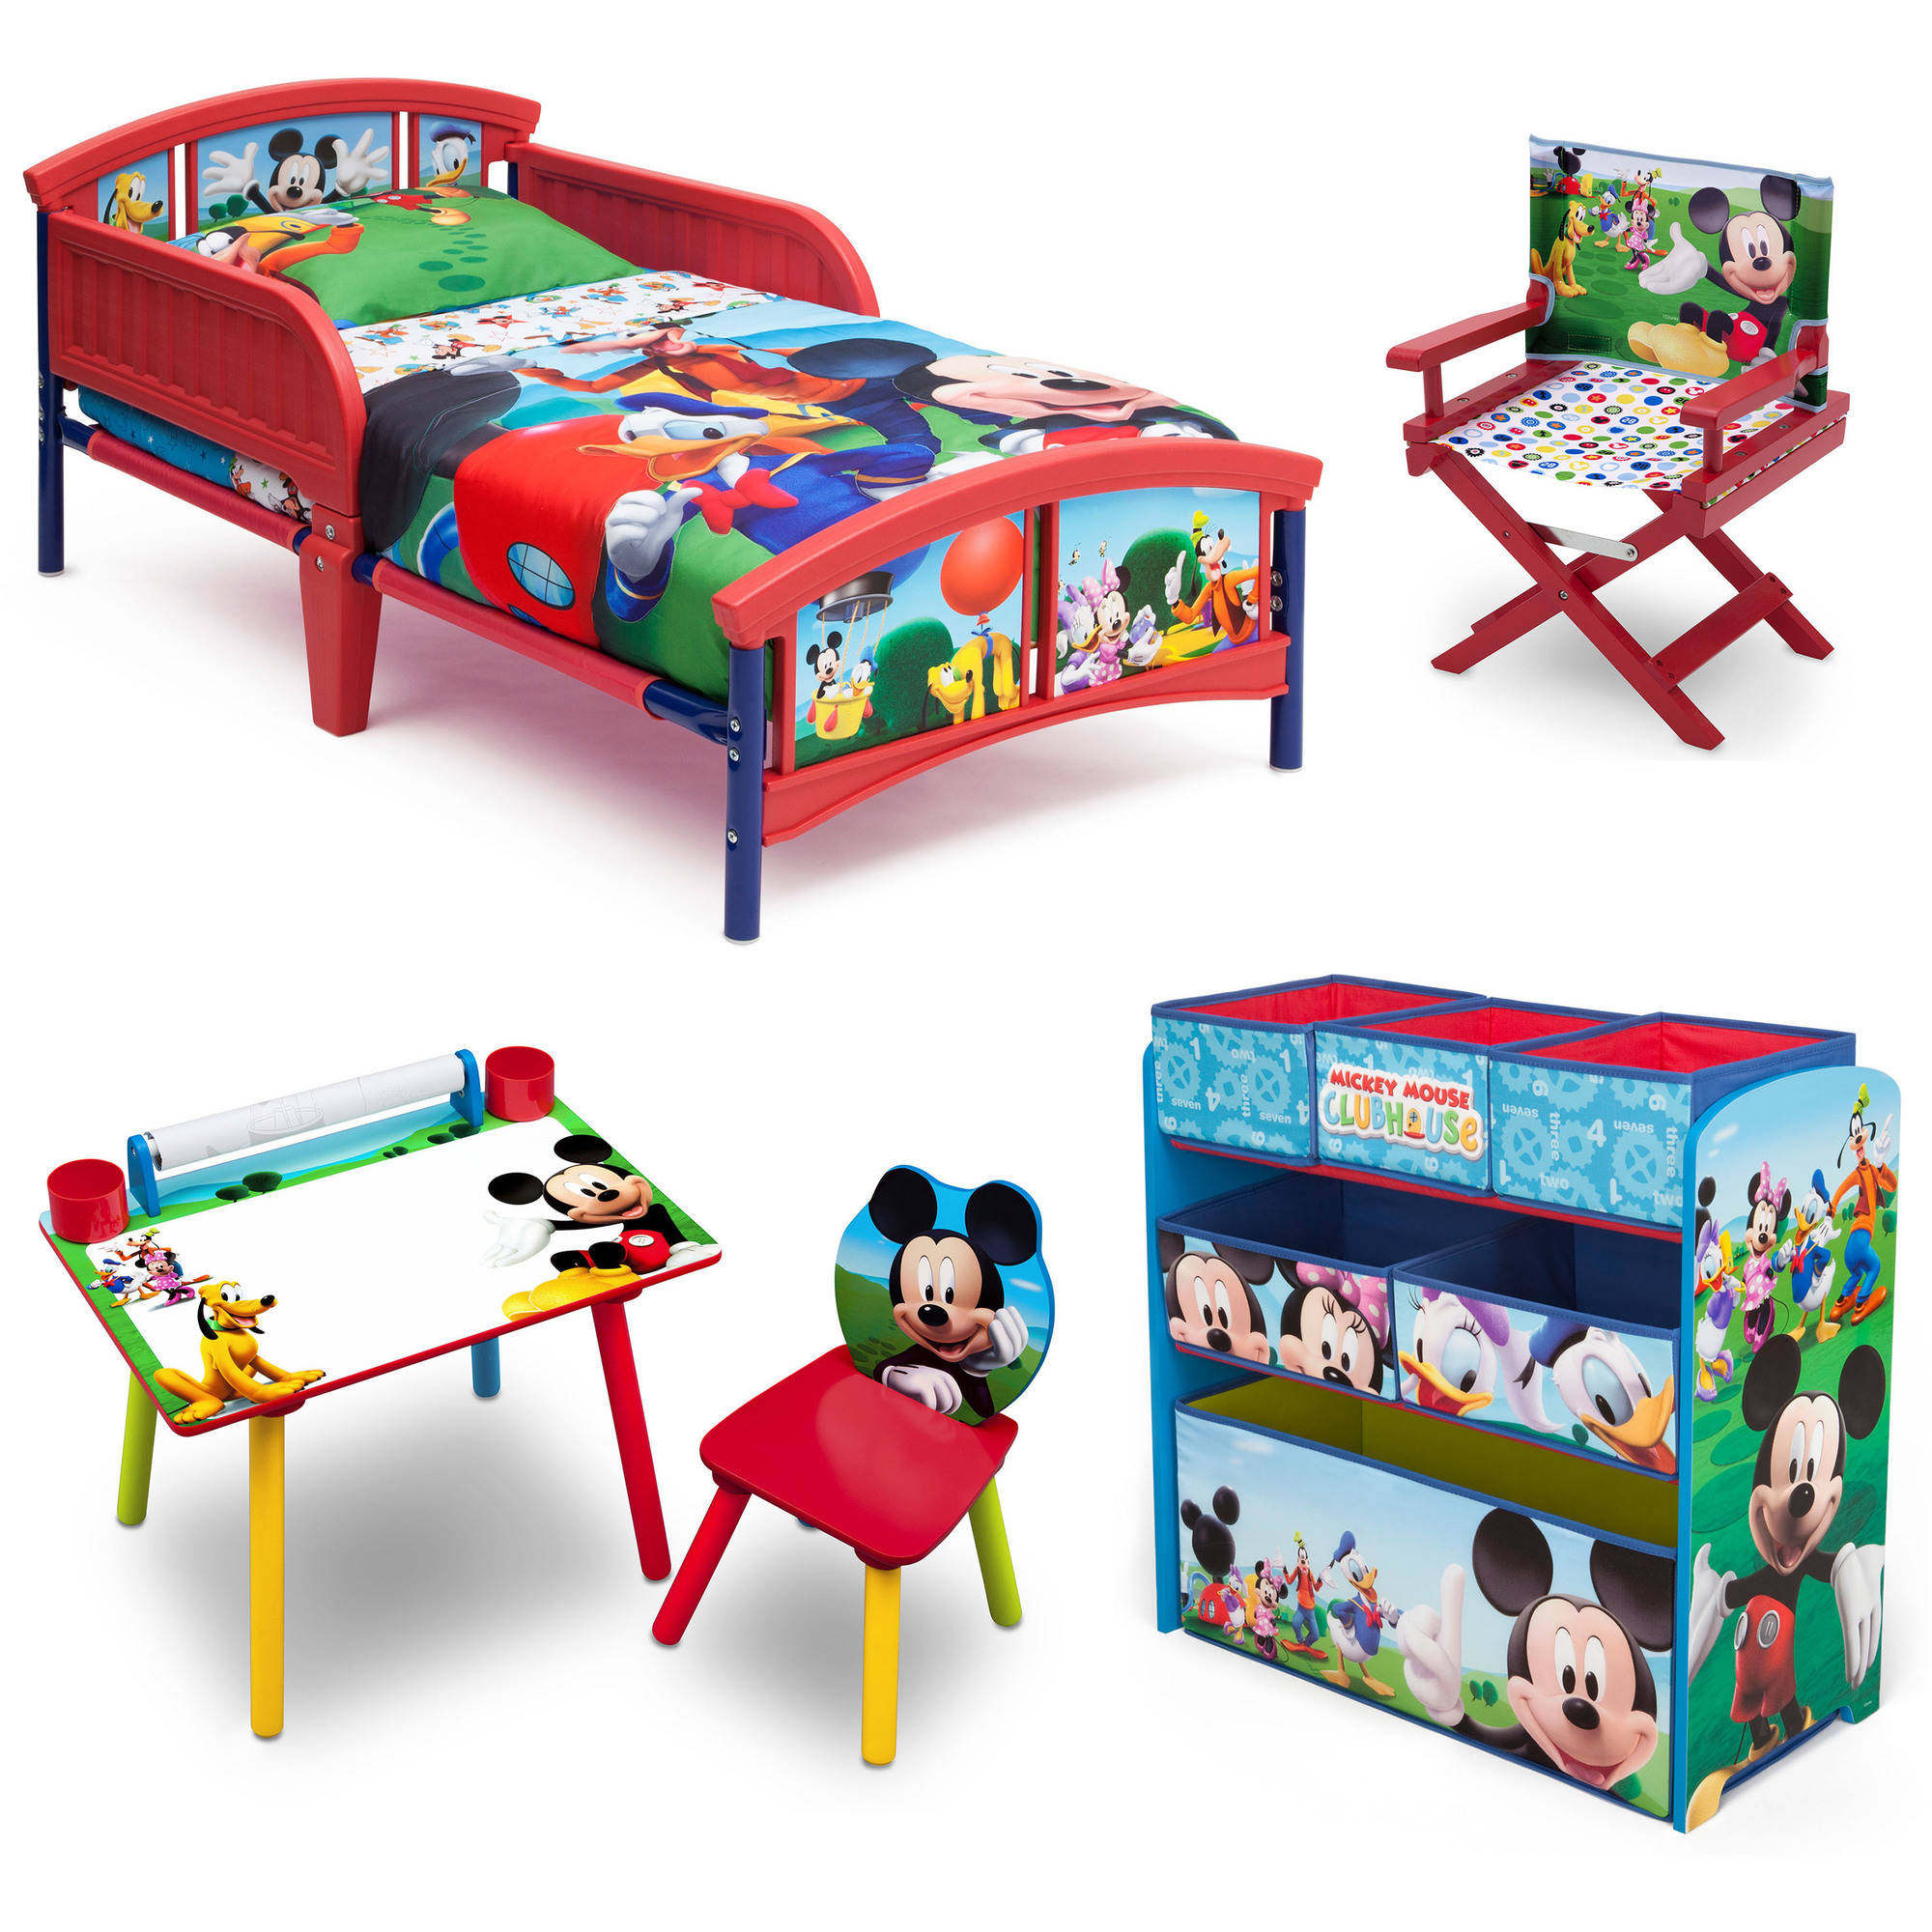 Merveilleux Disney Mickey Mouse Room In A Box With Bonus Chair